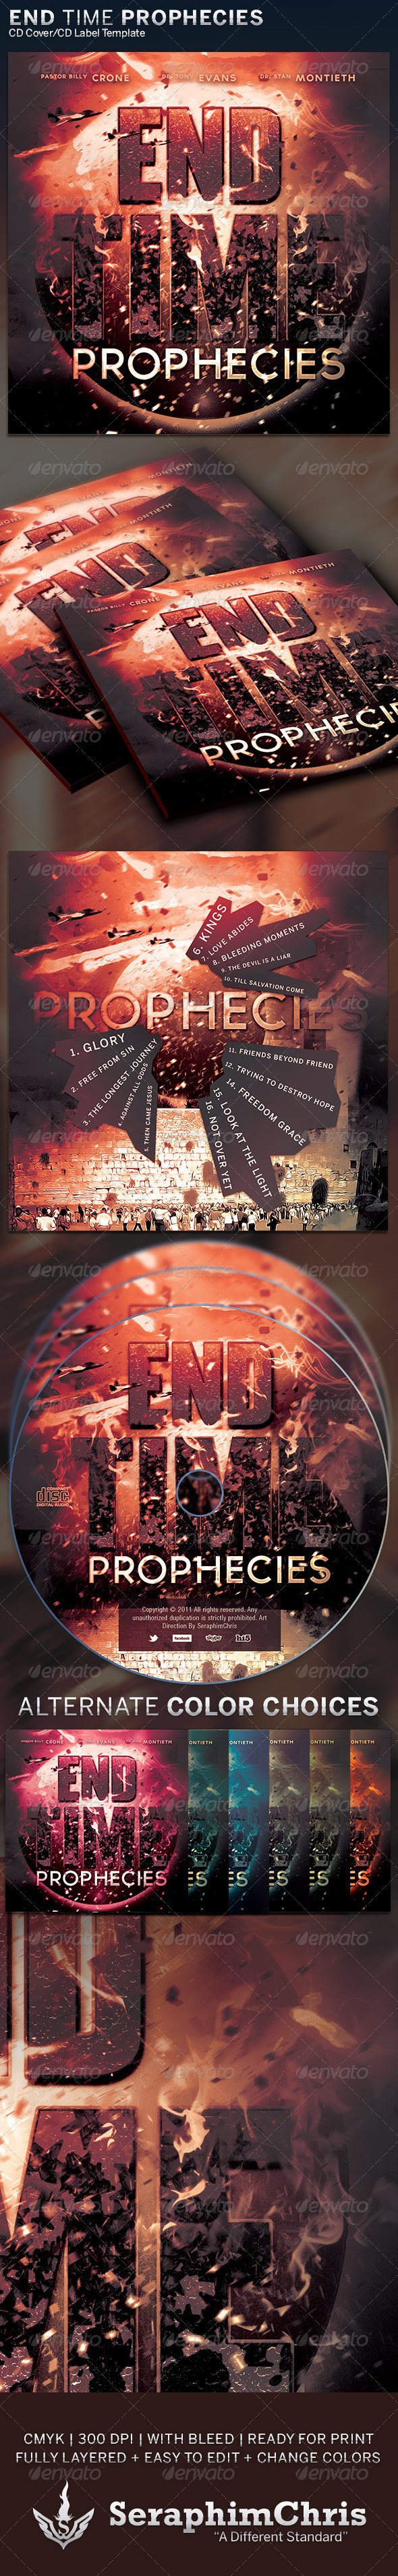 End Time Prophecies: CD Cover Artwork  Template - CD & DVD Artwork Print Templates